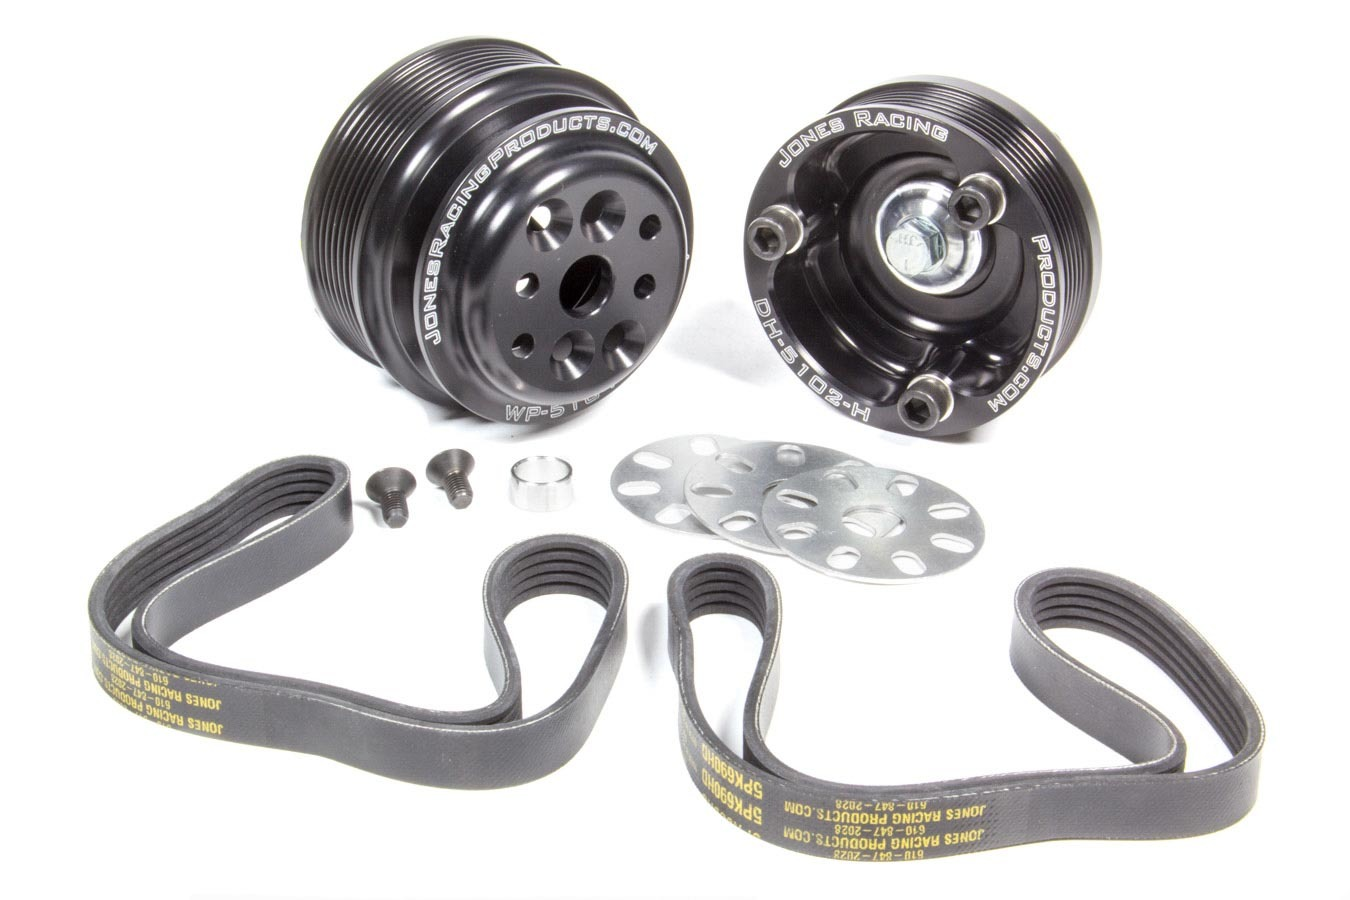 Jones Racing Products 1035-S Pulley Kit, 6 Rib Serpentine, Aluminum, Black Anodize, Small Block Chevy, Kit